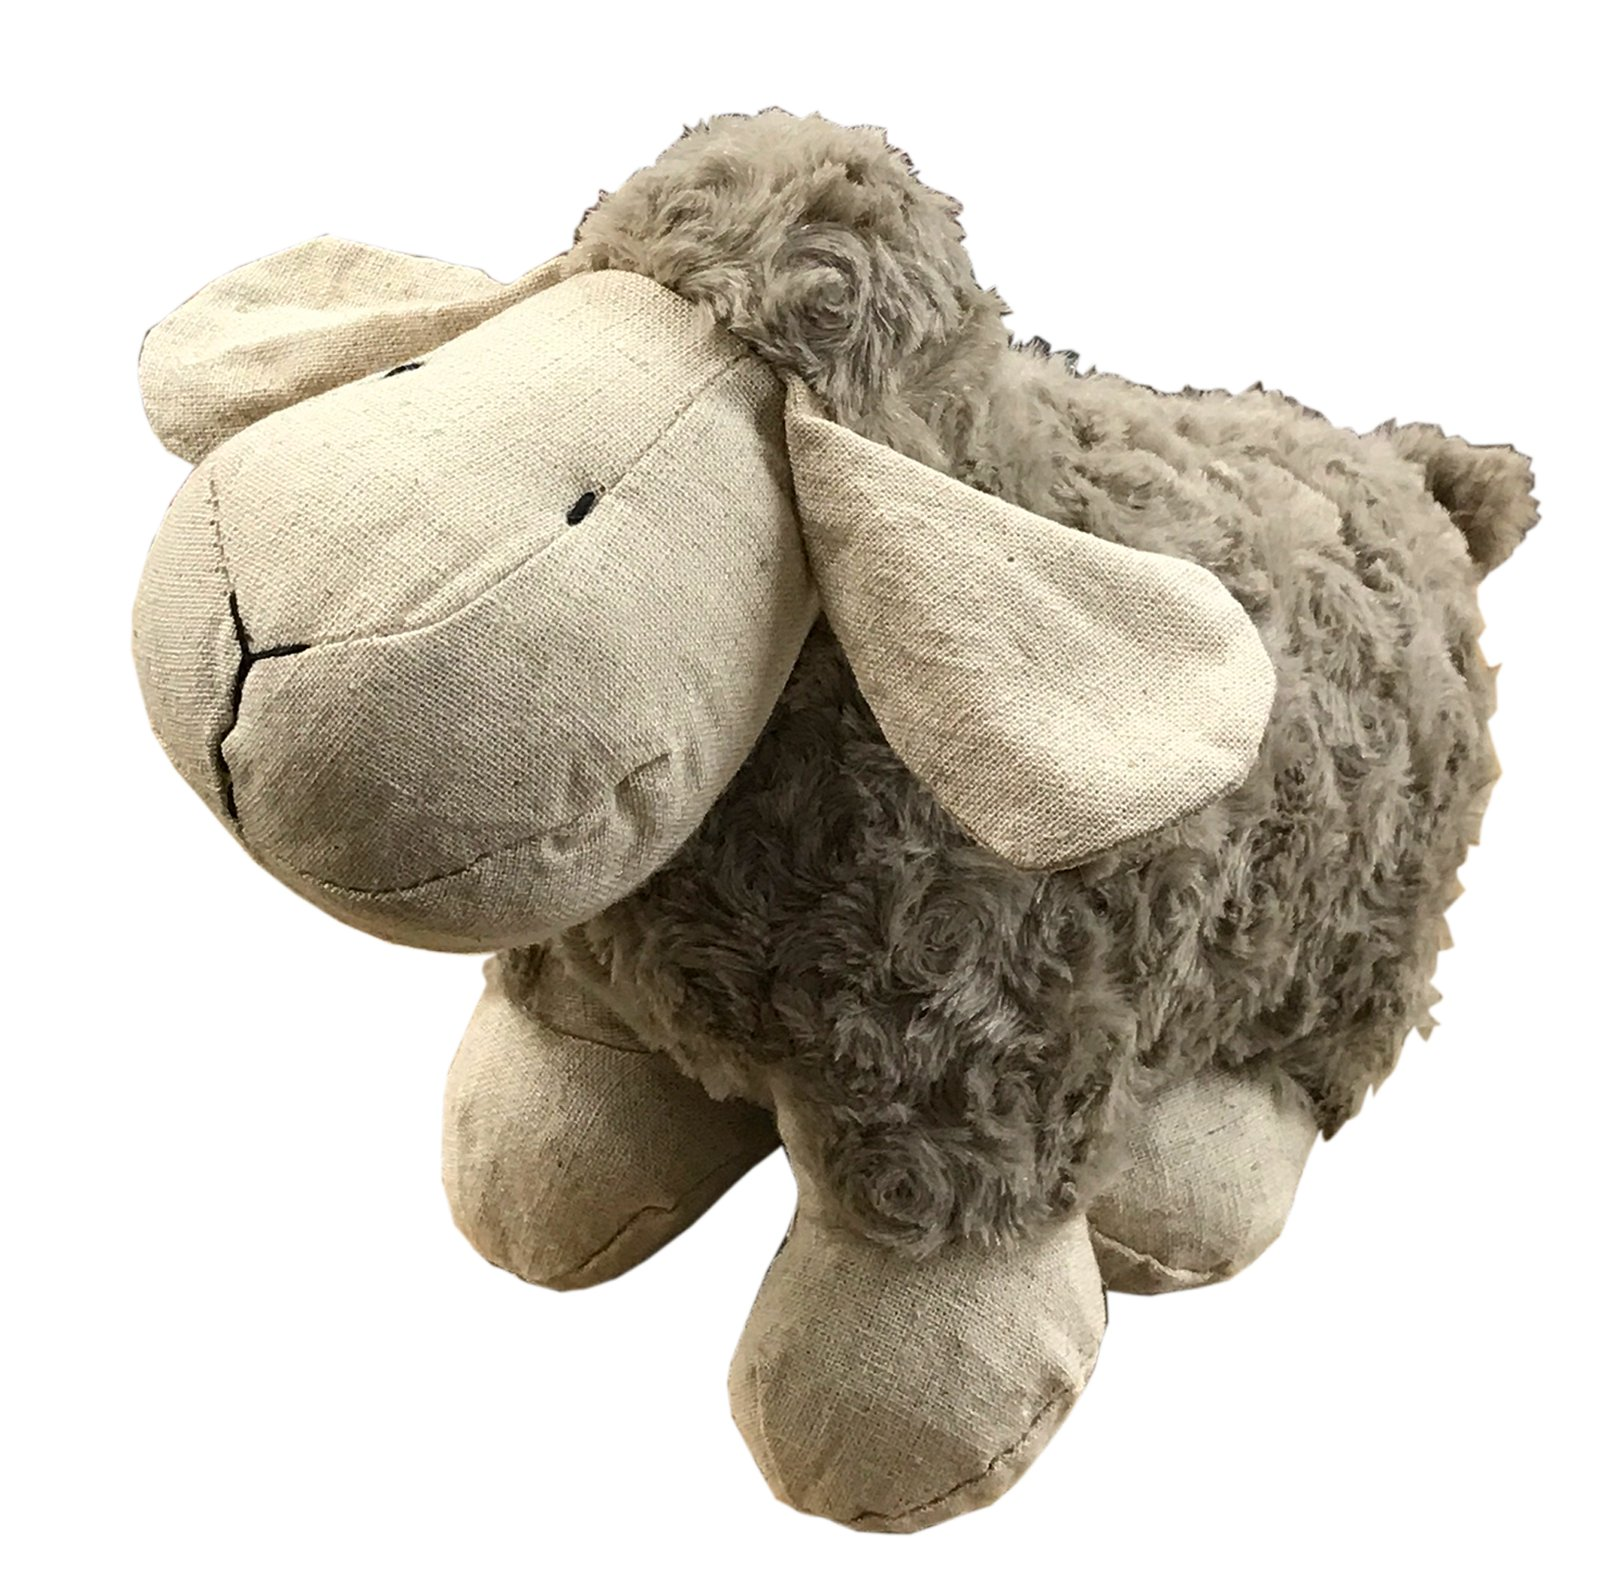 Sheep Doorstop - Brown